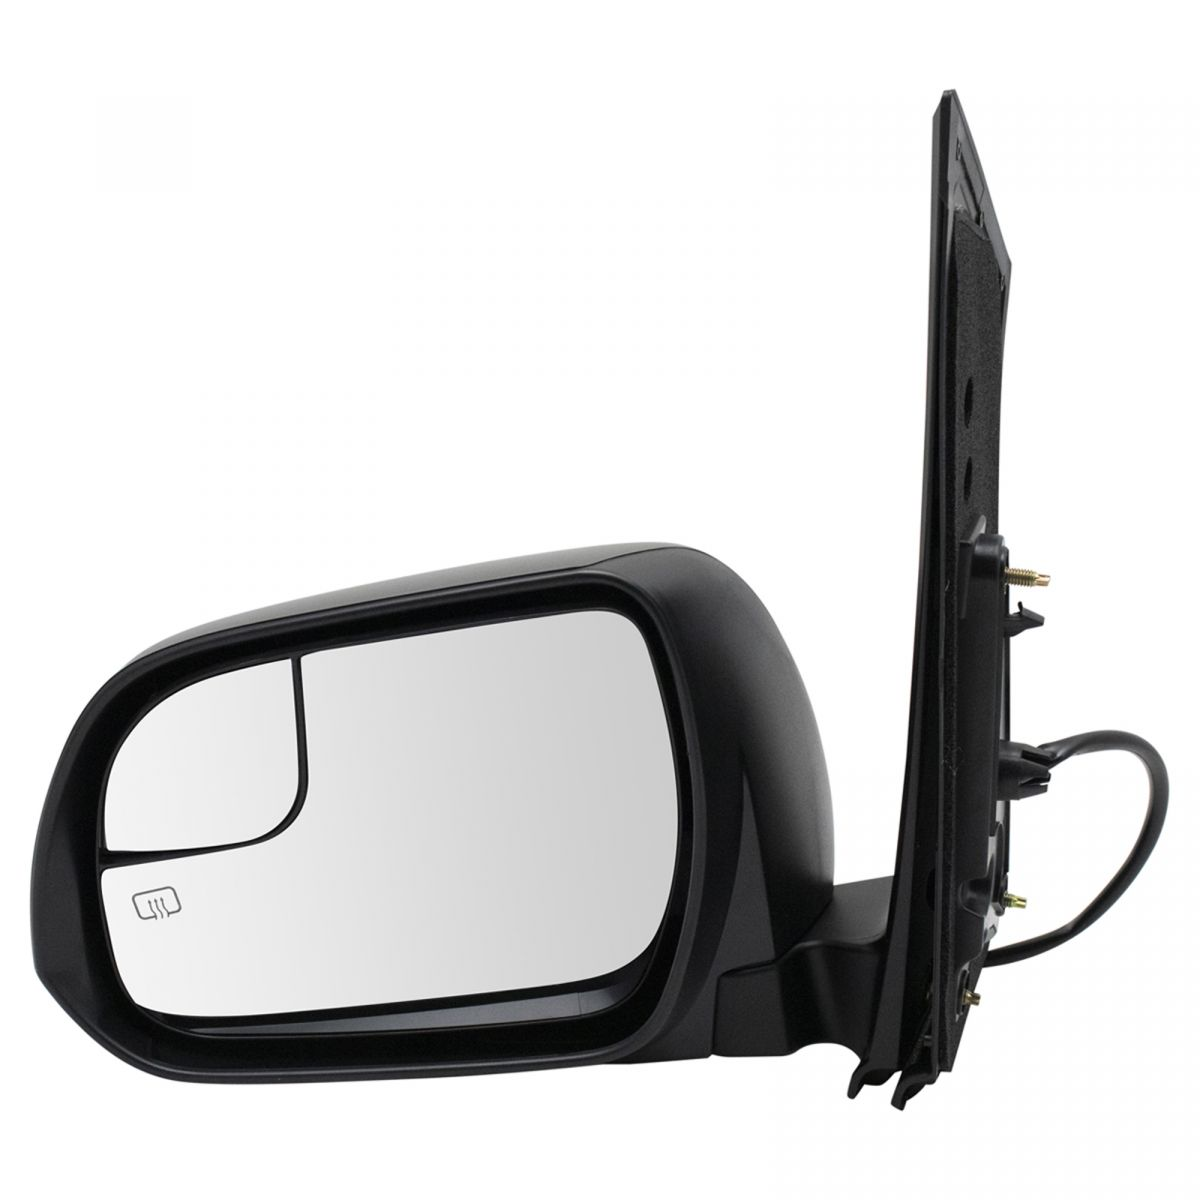 Genuine Toyota 87940-08150-B1 Rear View Mirror Assembly